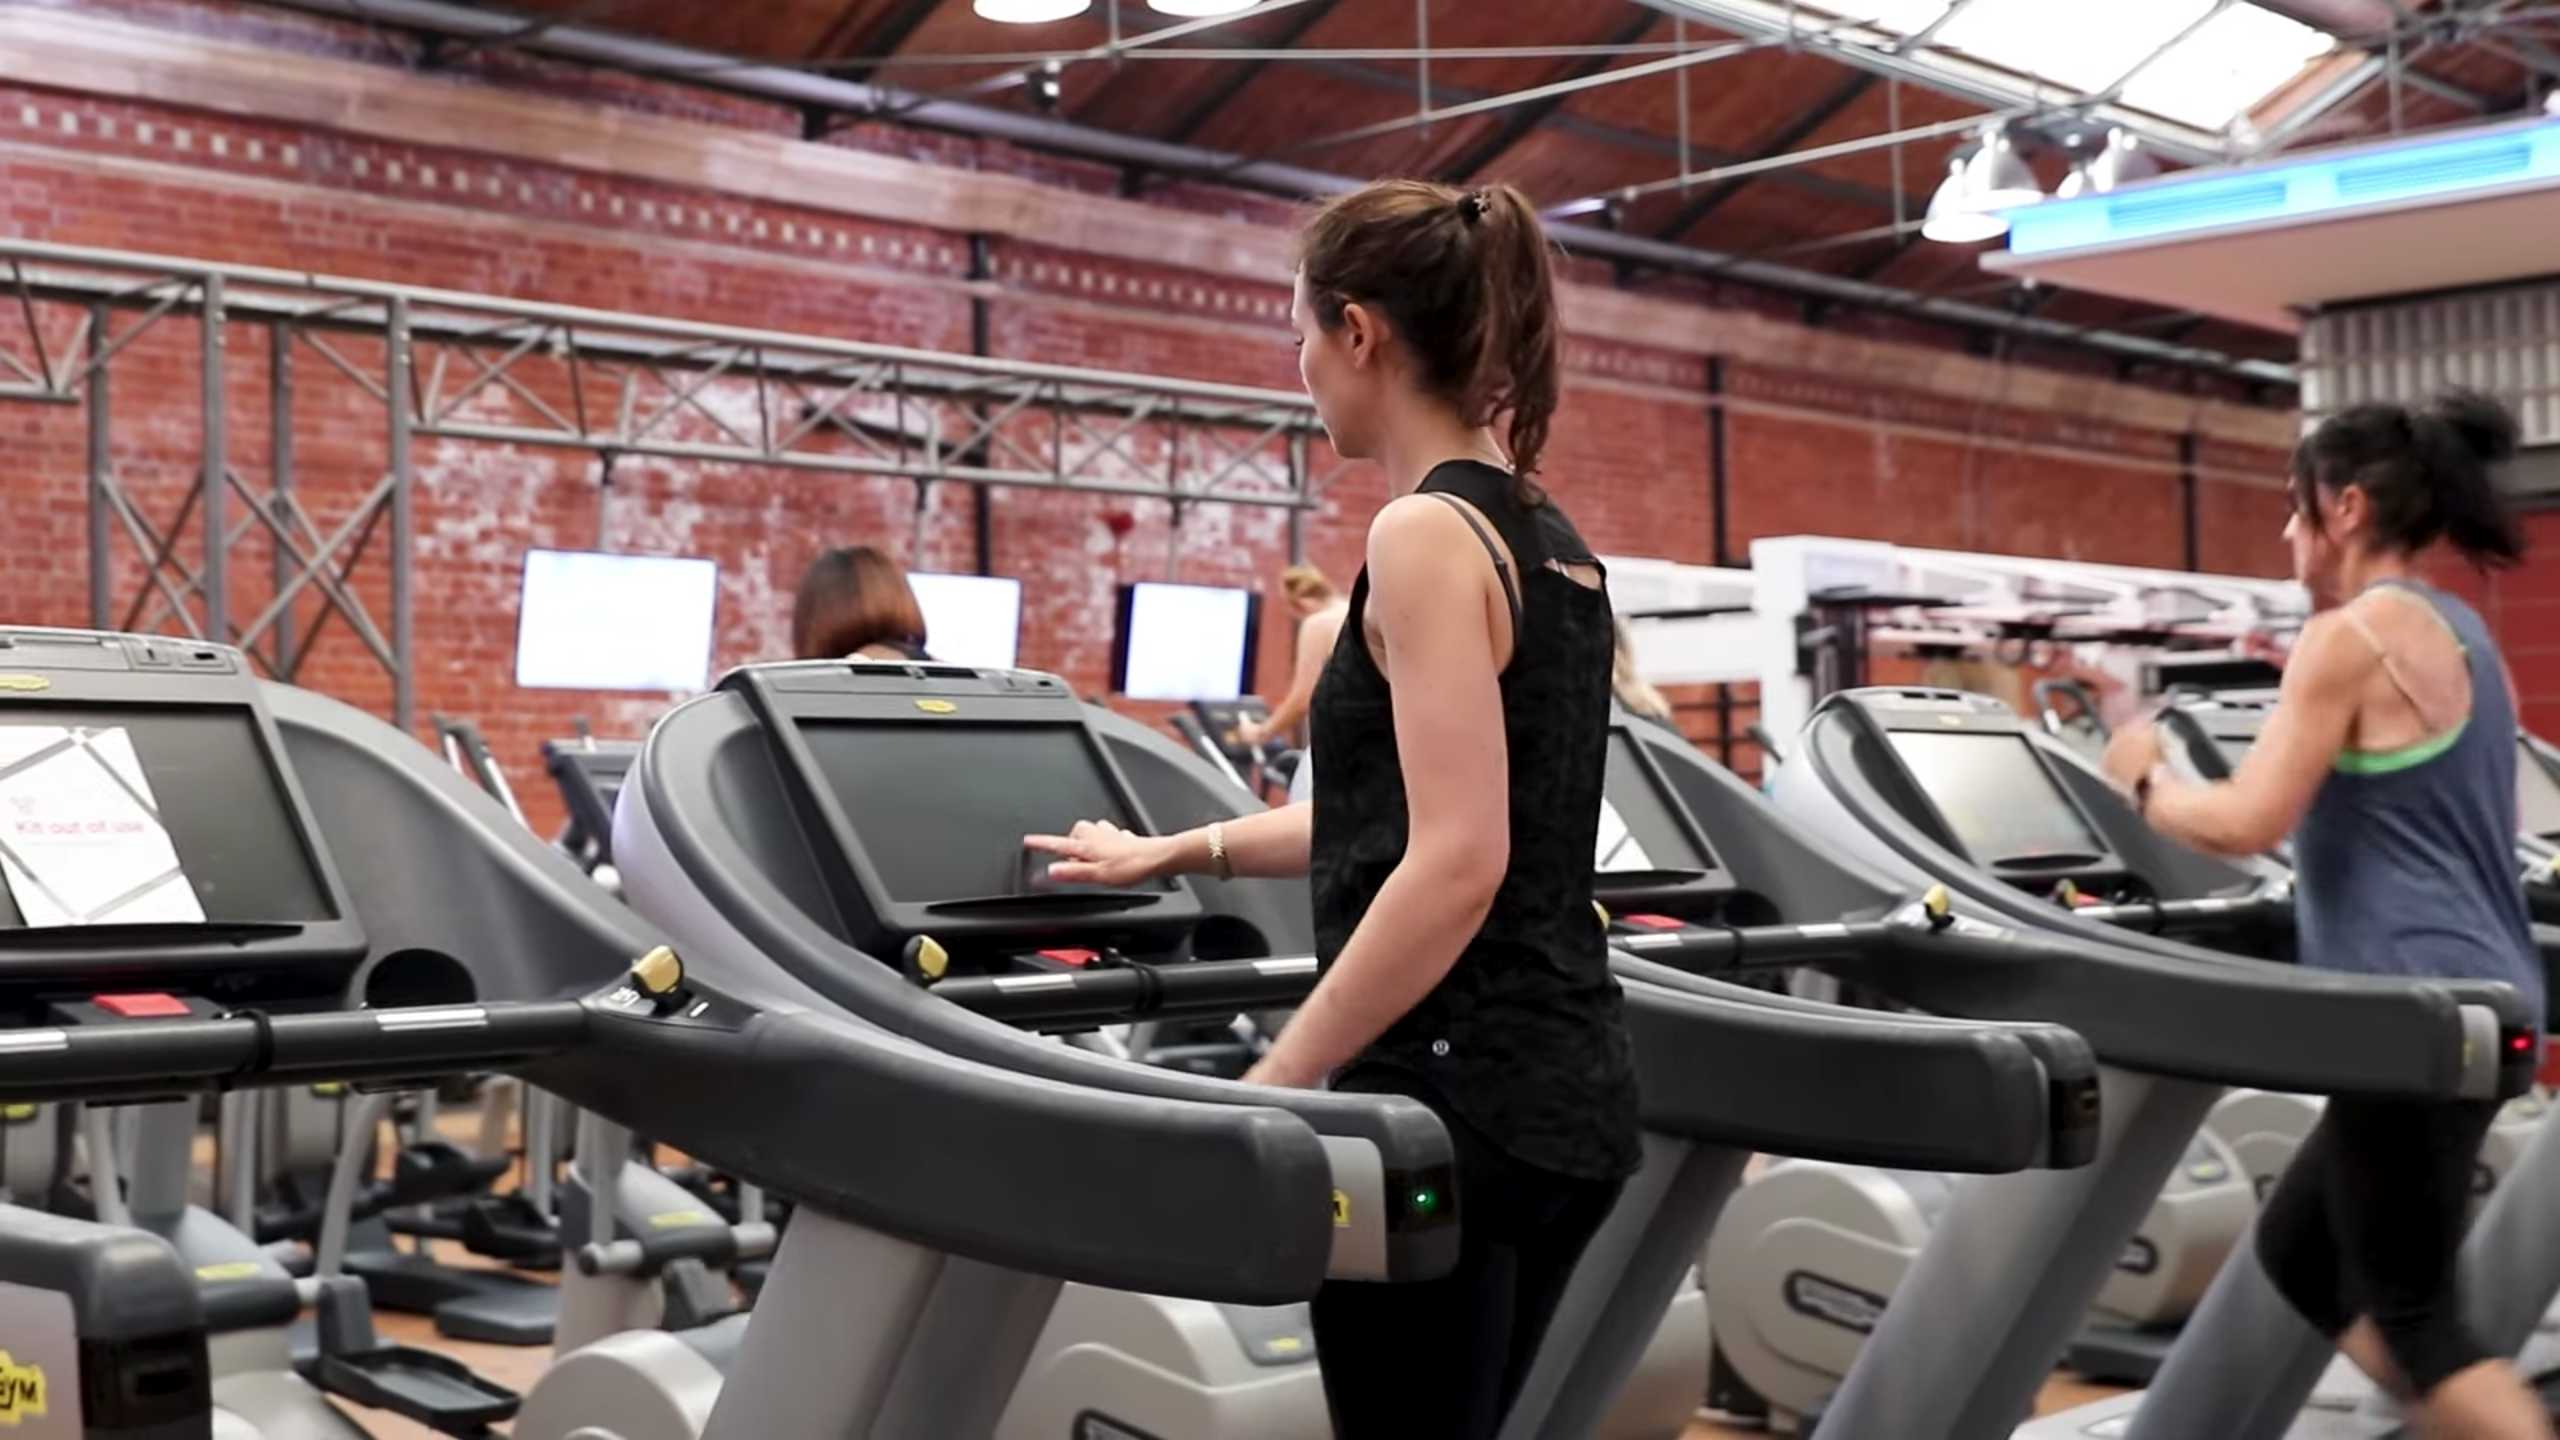 Virgin Active members maintain social distancing while working out